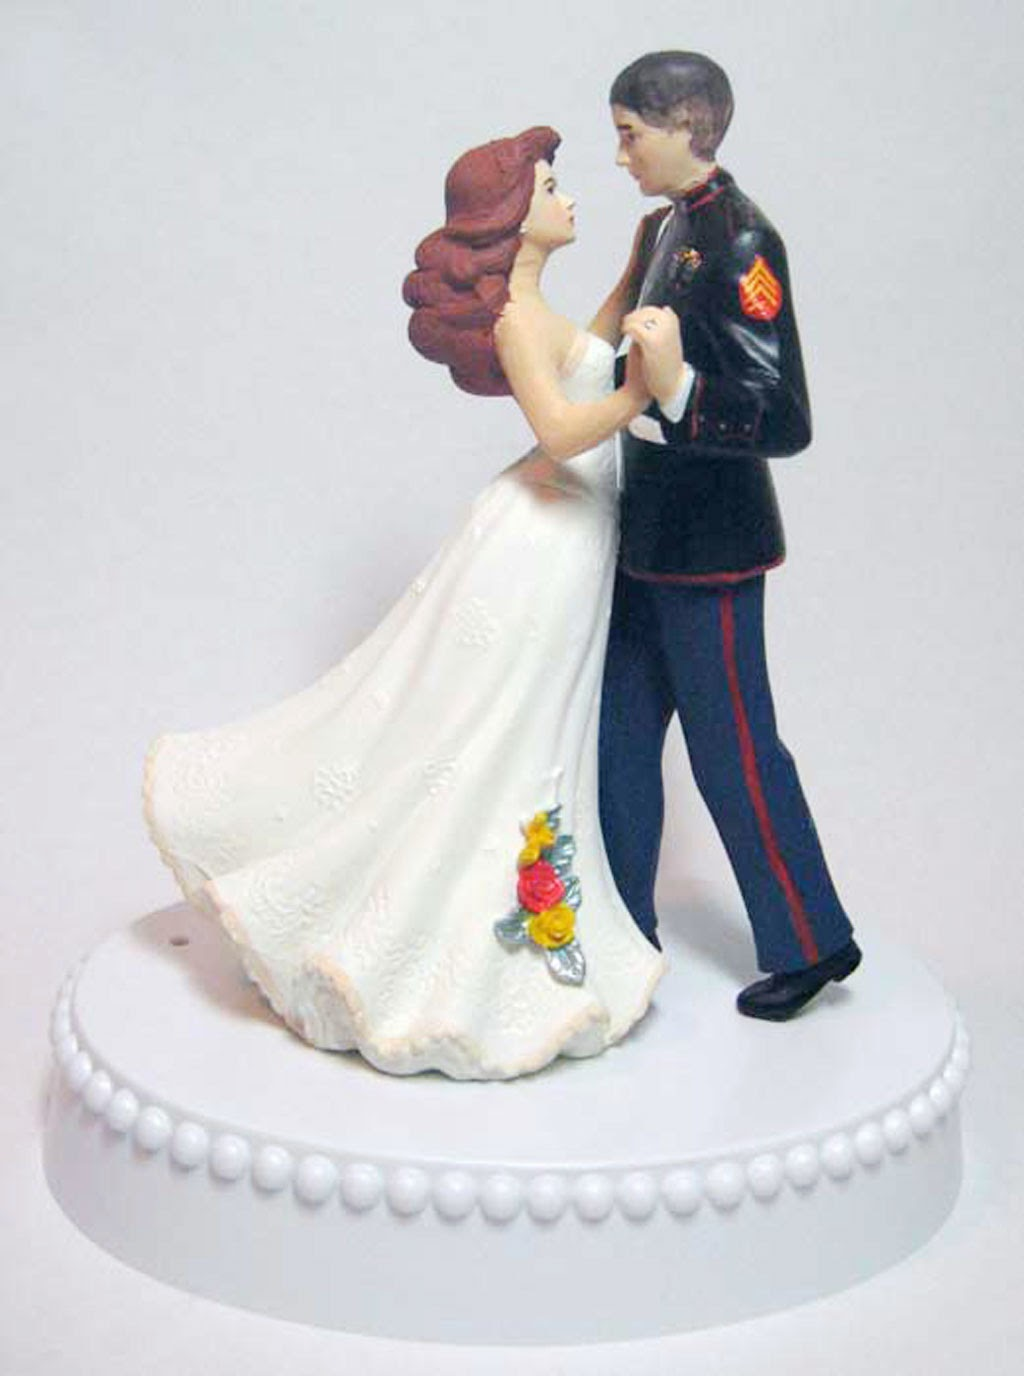 s wedding cake topper bridal style wedding cake topper ideas 2014 20682